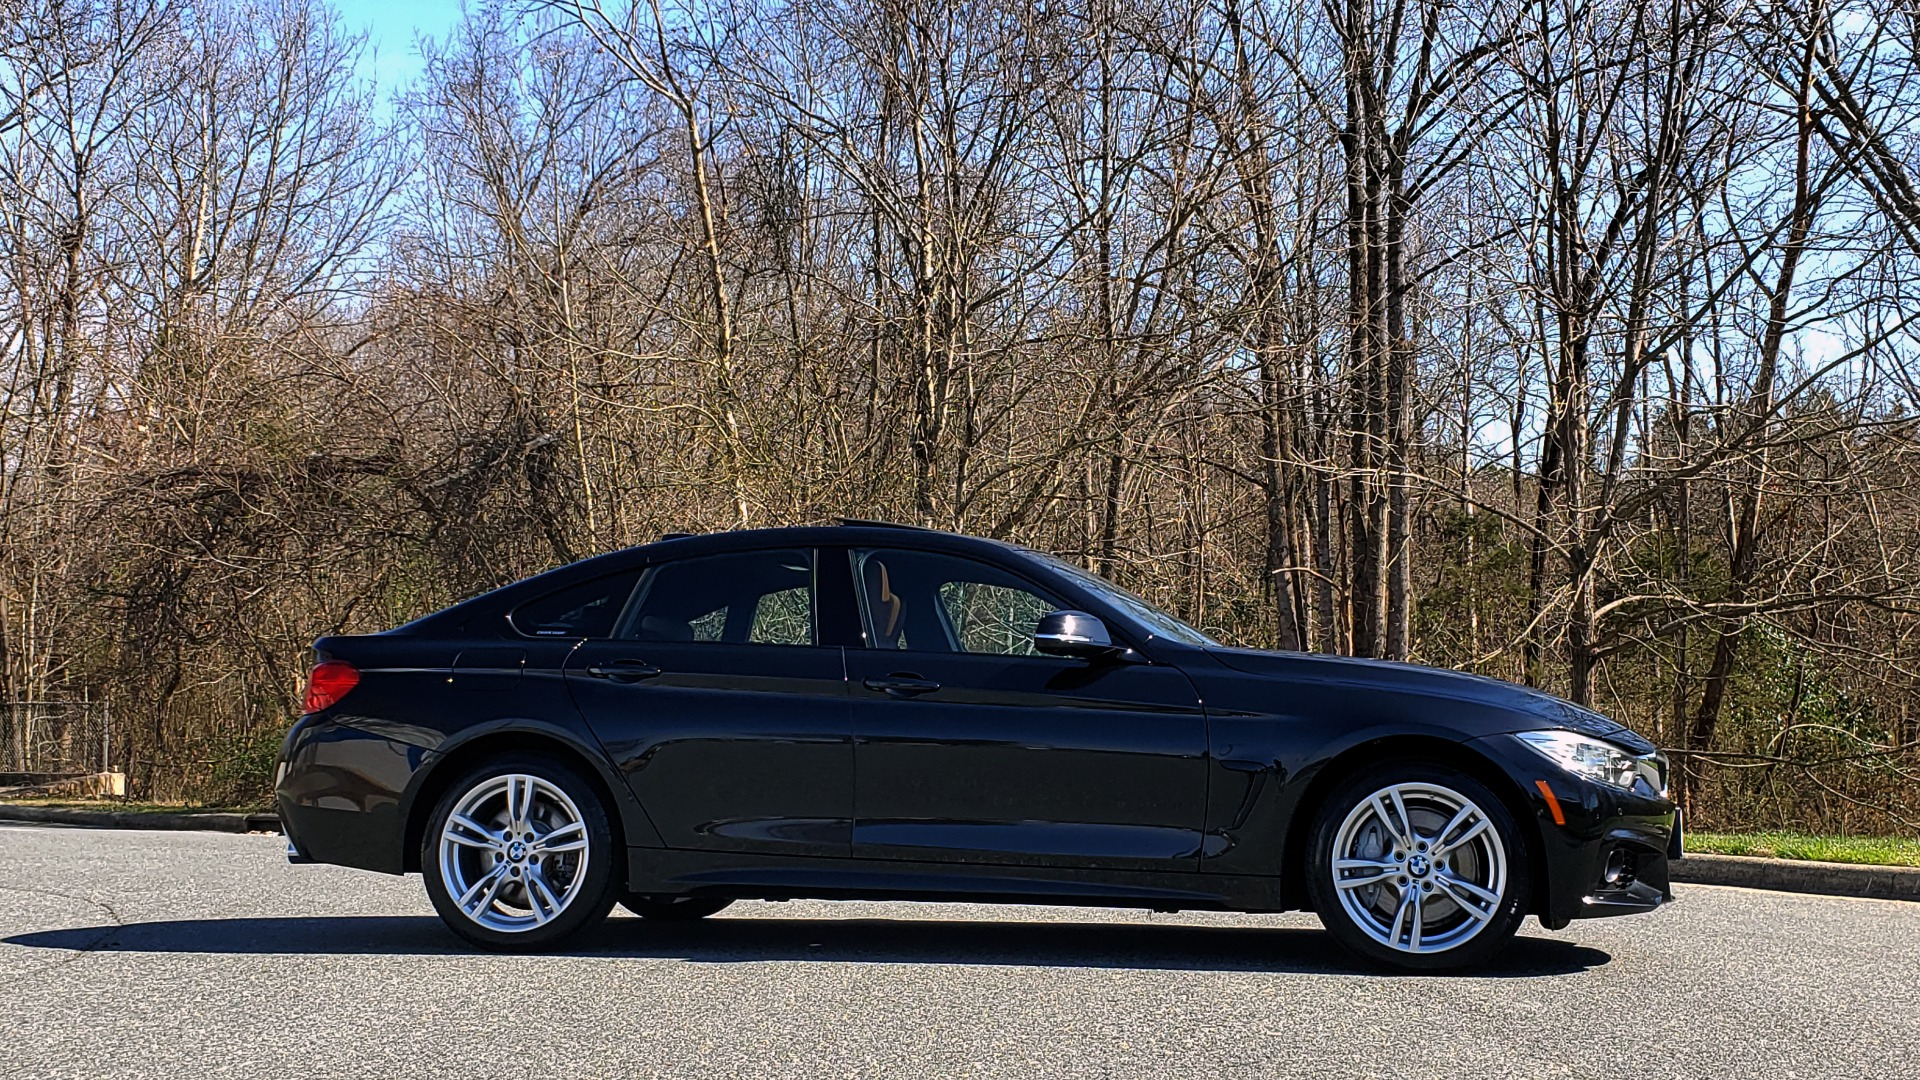 Used 2017 BMW 4 SERIES 440i XDRIVE M-SPORT / TECH / CLD WTHR / DRVR ASST PLUS / LIGHTING for sale Sold at Formula Imports in Charlotte NC 28227 5